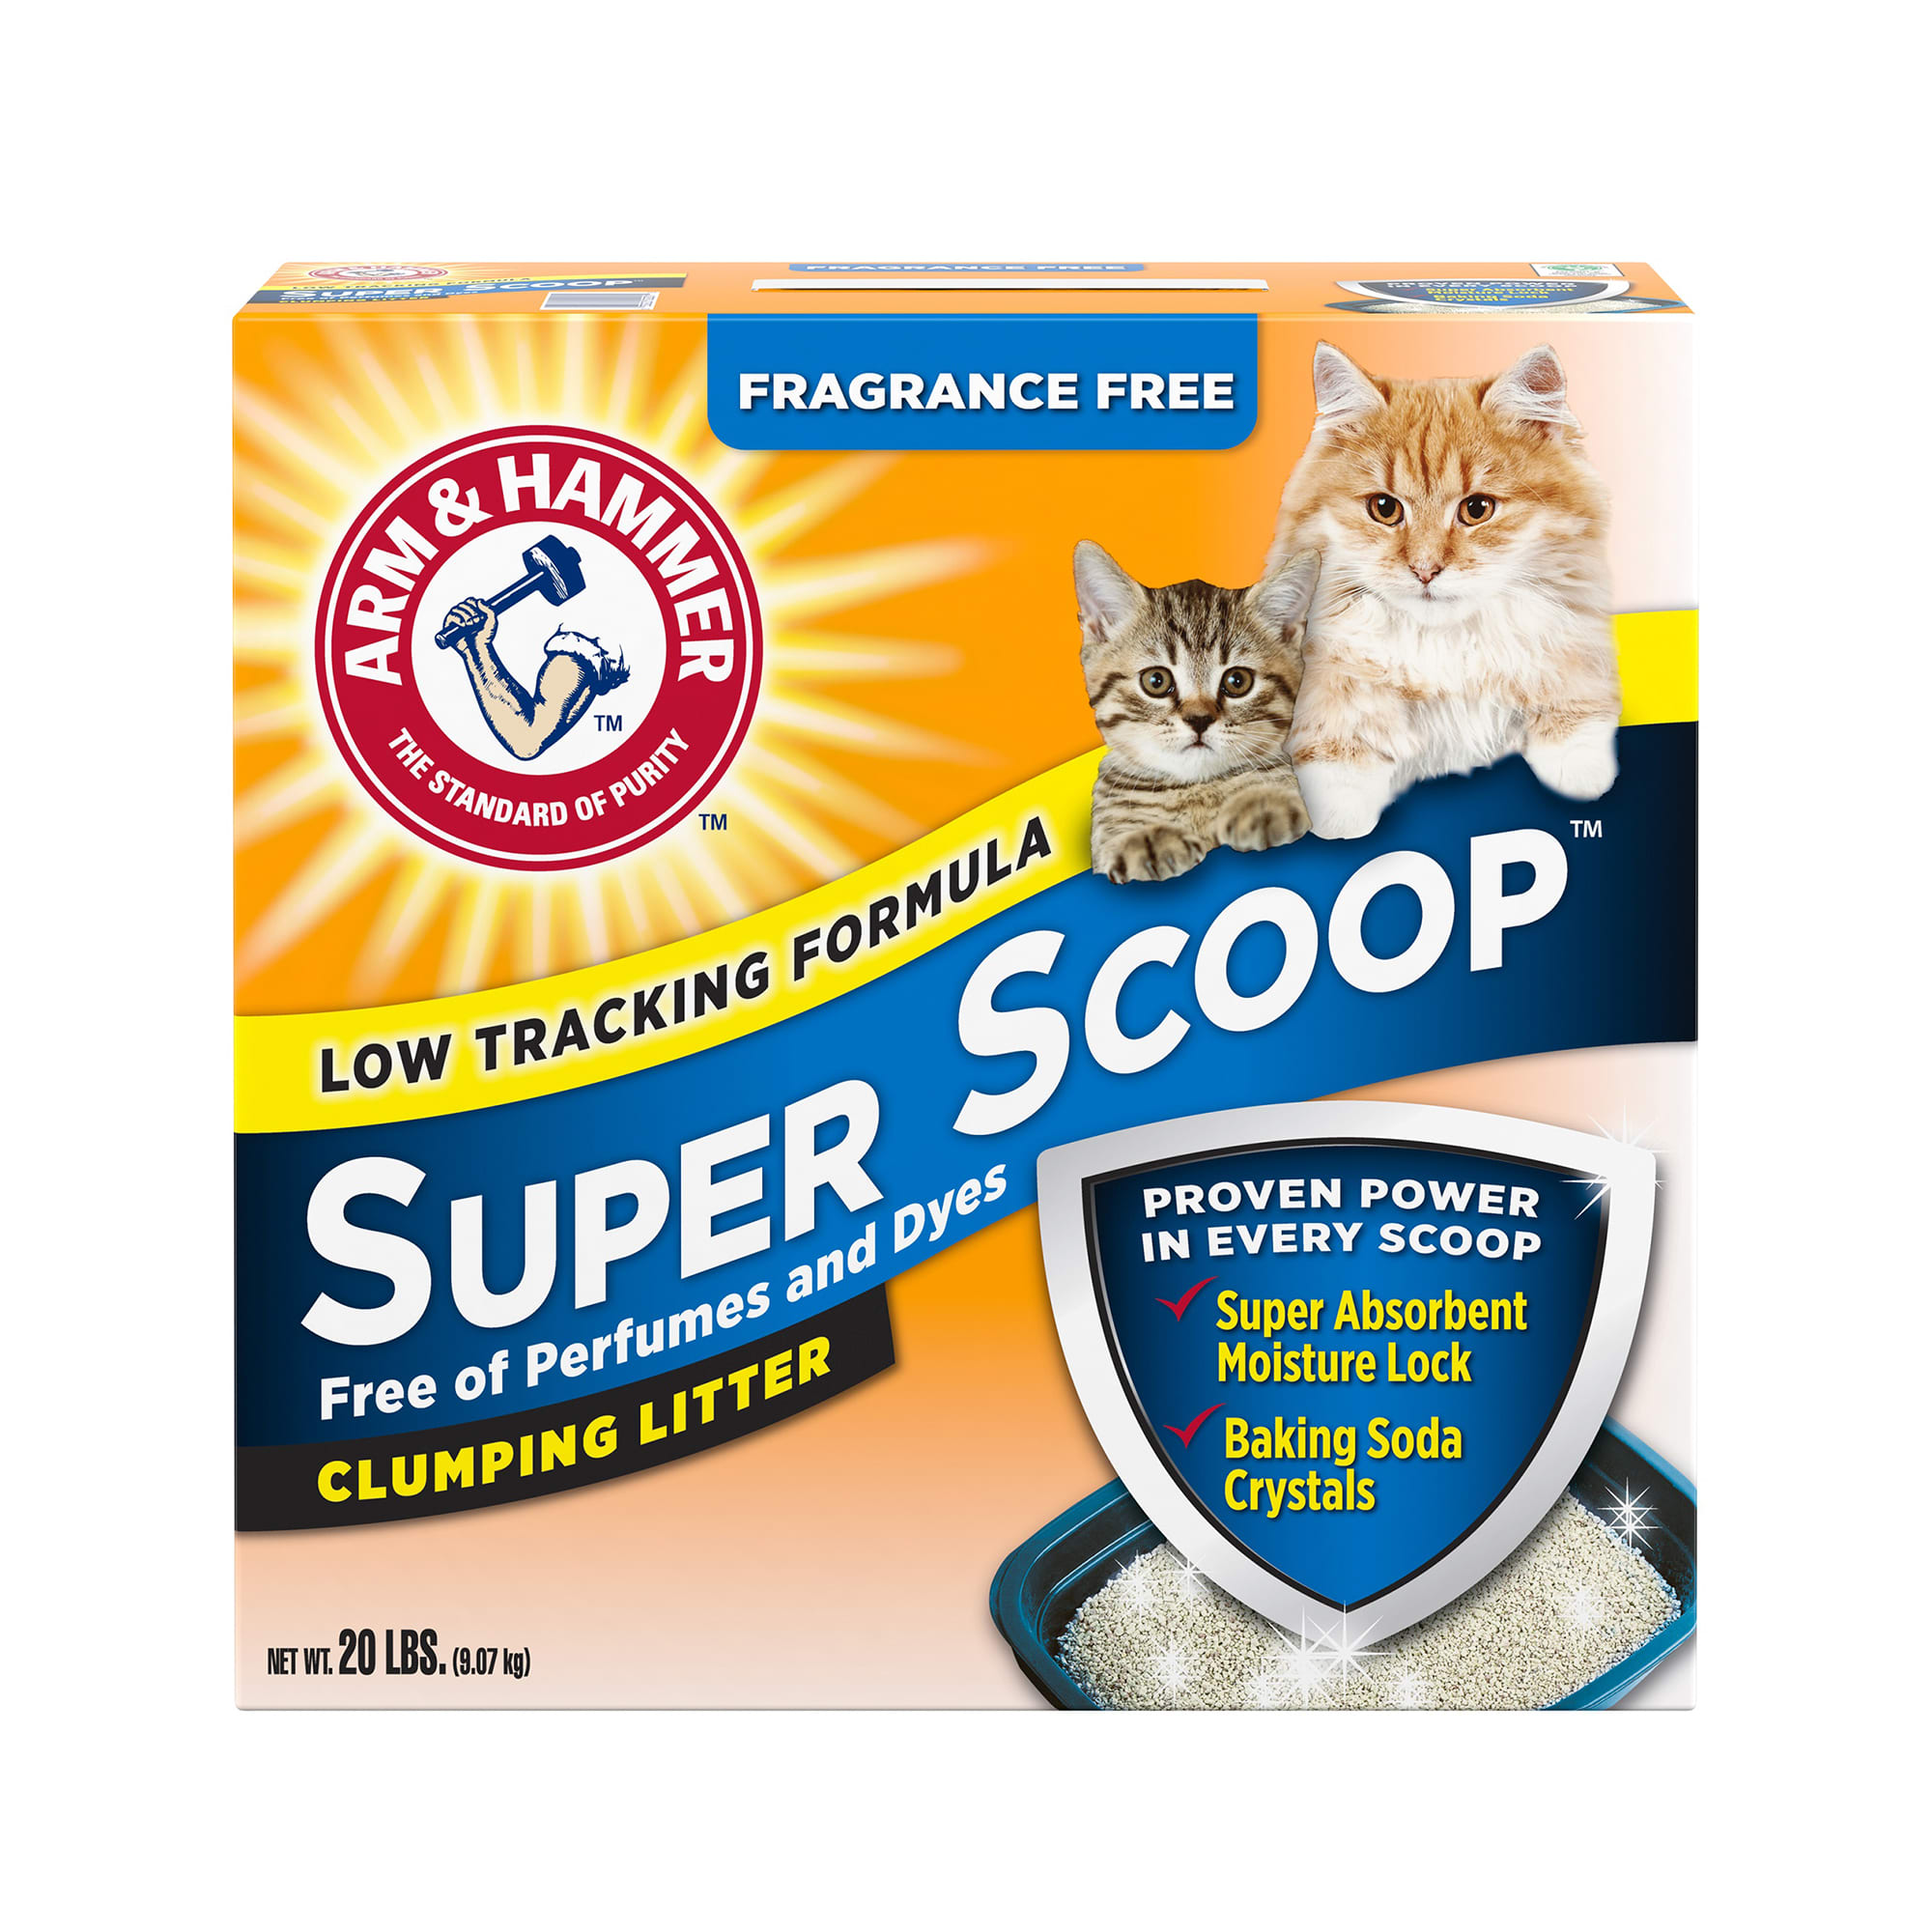 Arm & Hammer Fragrance Free Super Scoop Clumping Litter for Cats, 20 lbs.